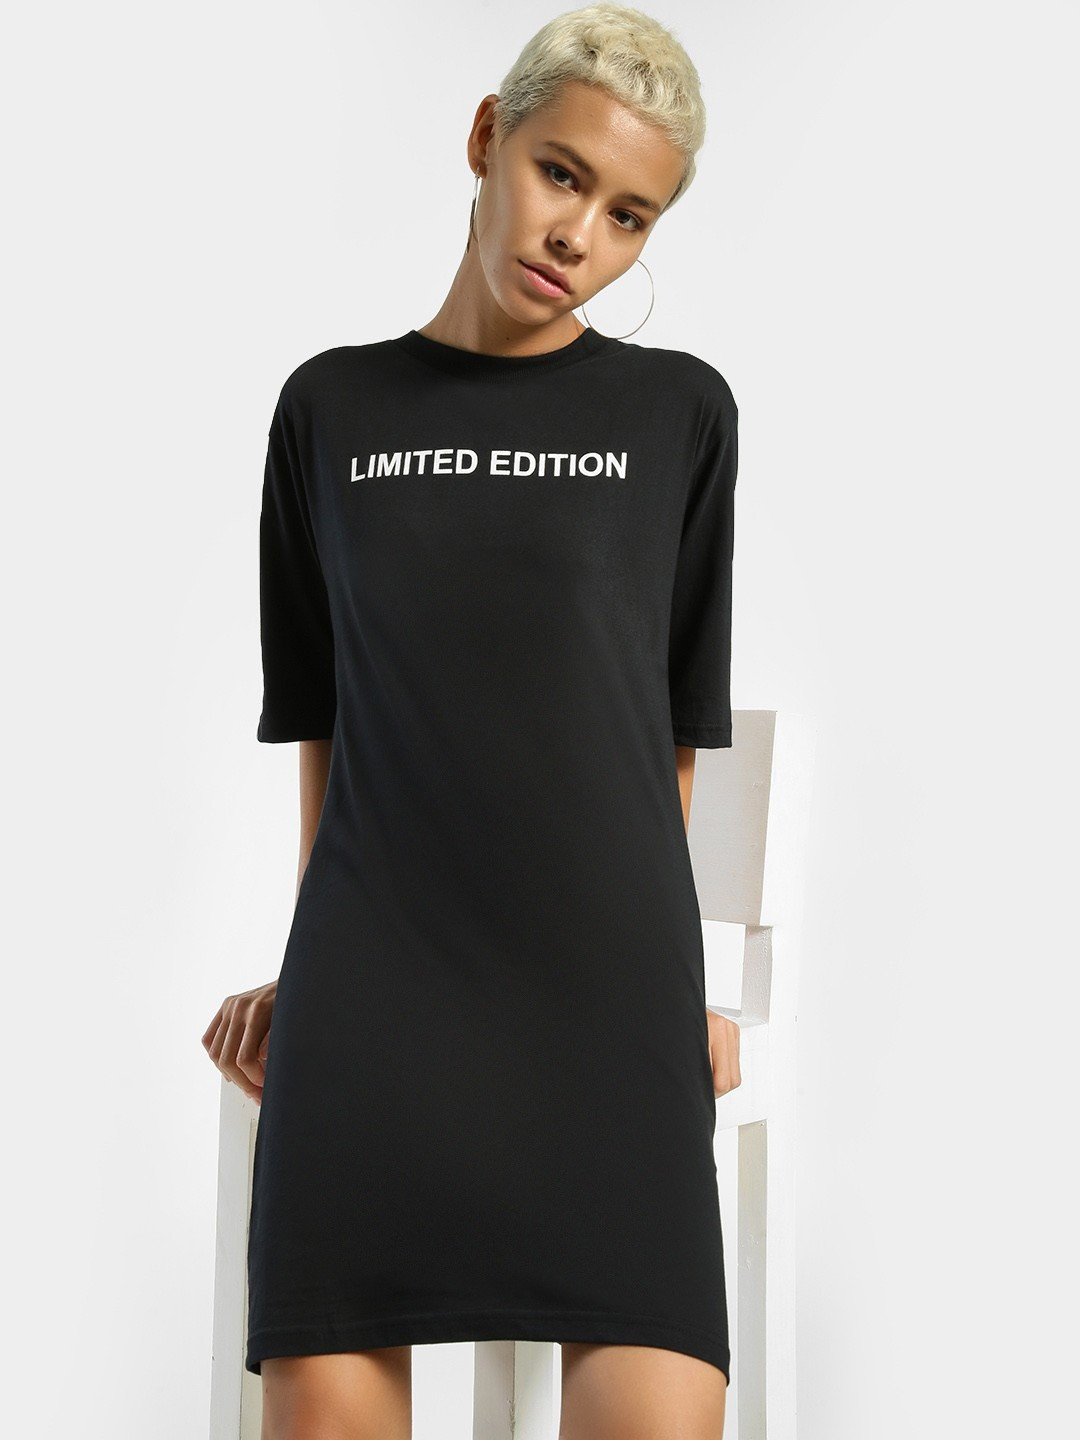 Daisy Street Black Limited Edition T-Shirt Dress 1